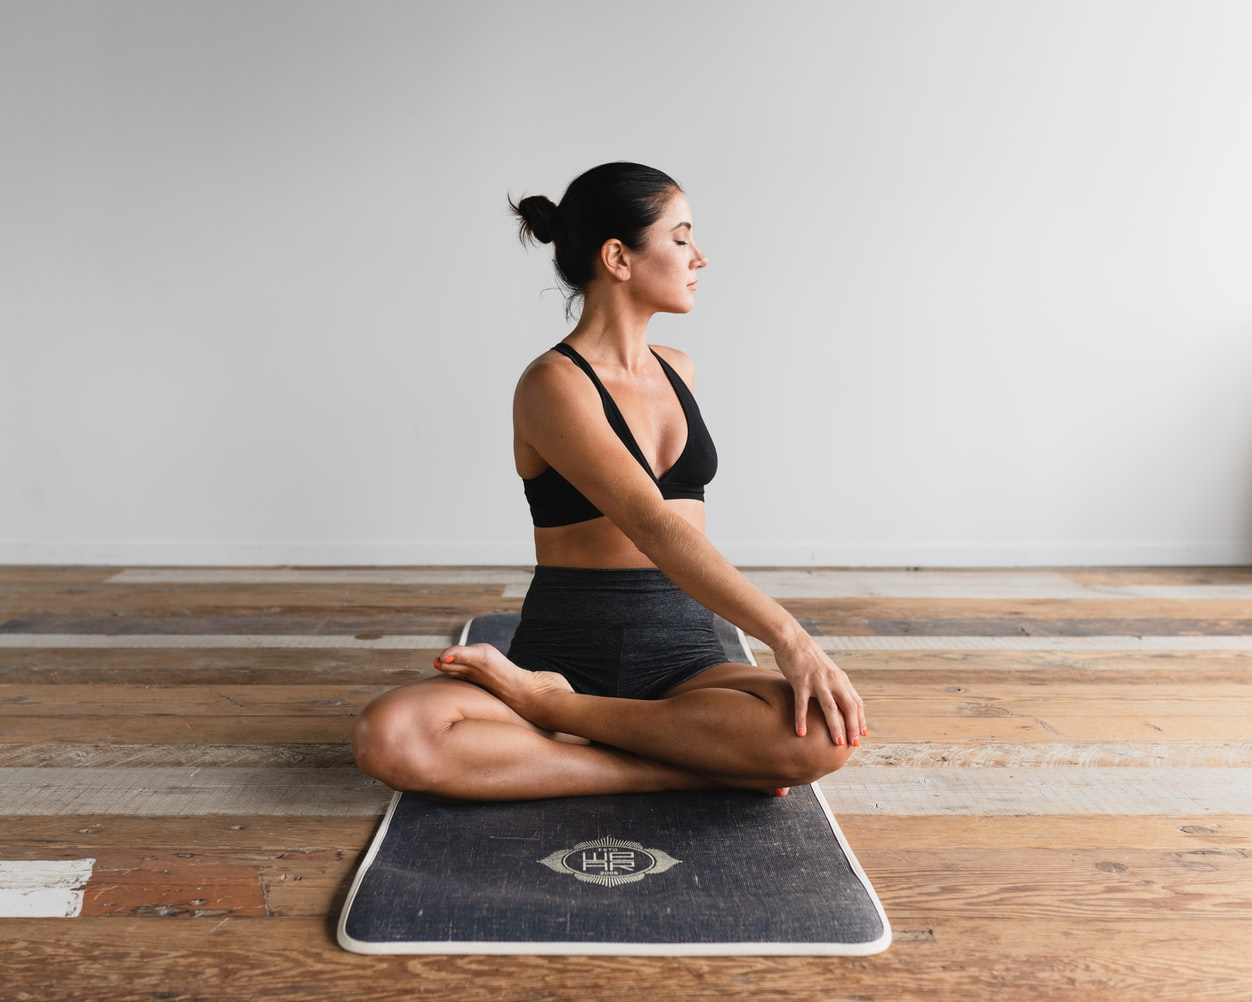 There are tons of morning stretch routines that you can practice from the comfort of your home. Check out stretch tips here.